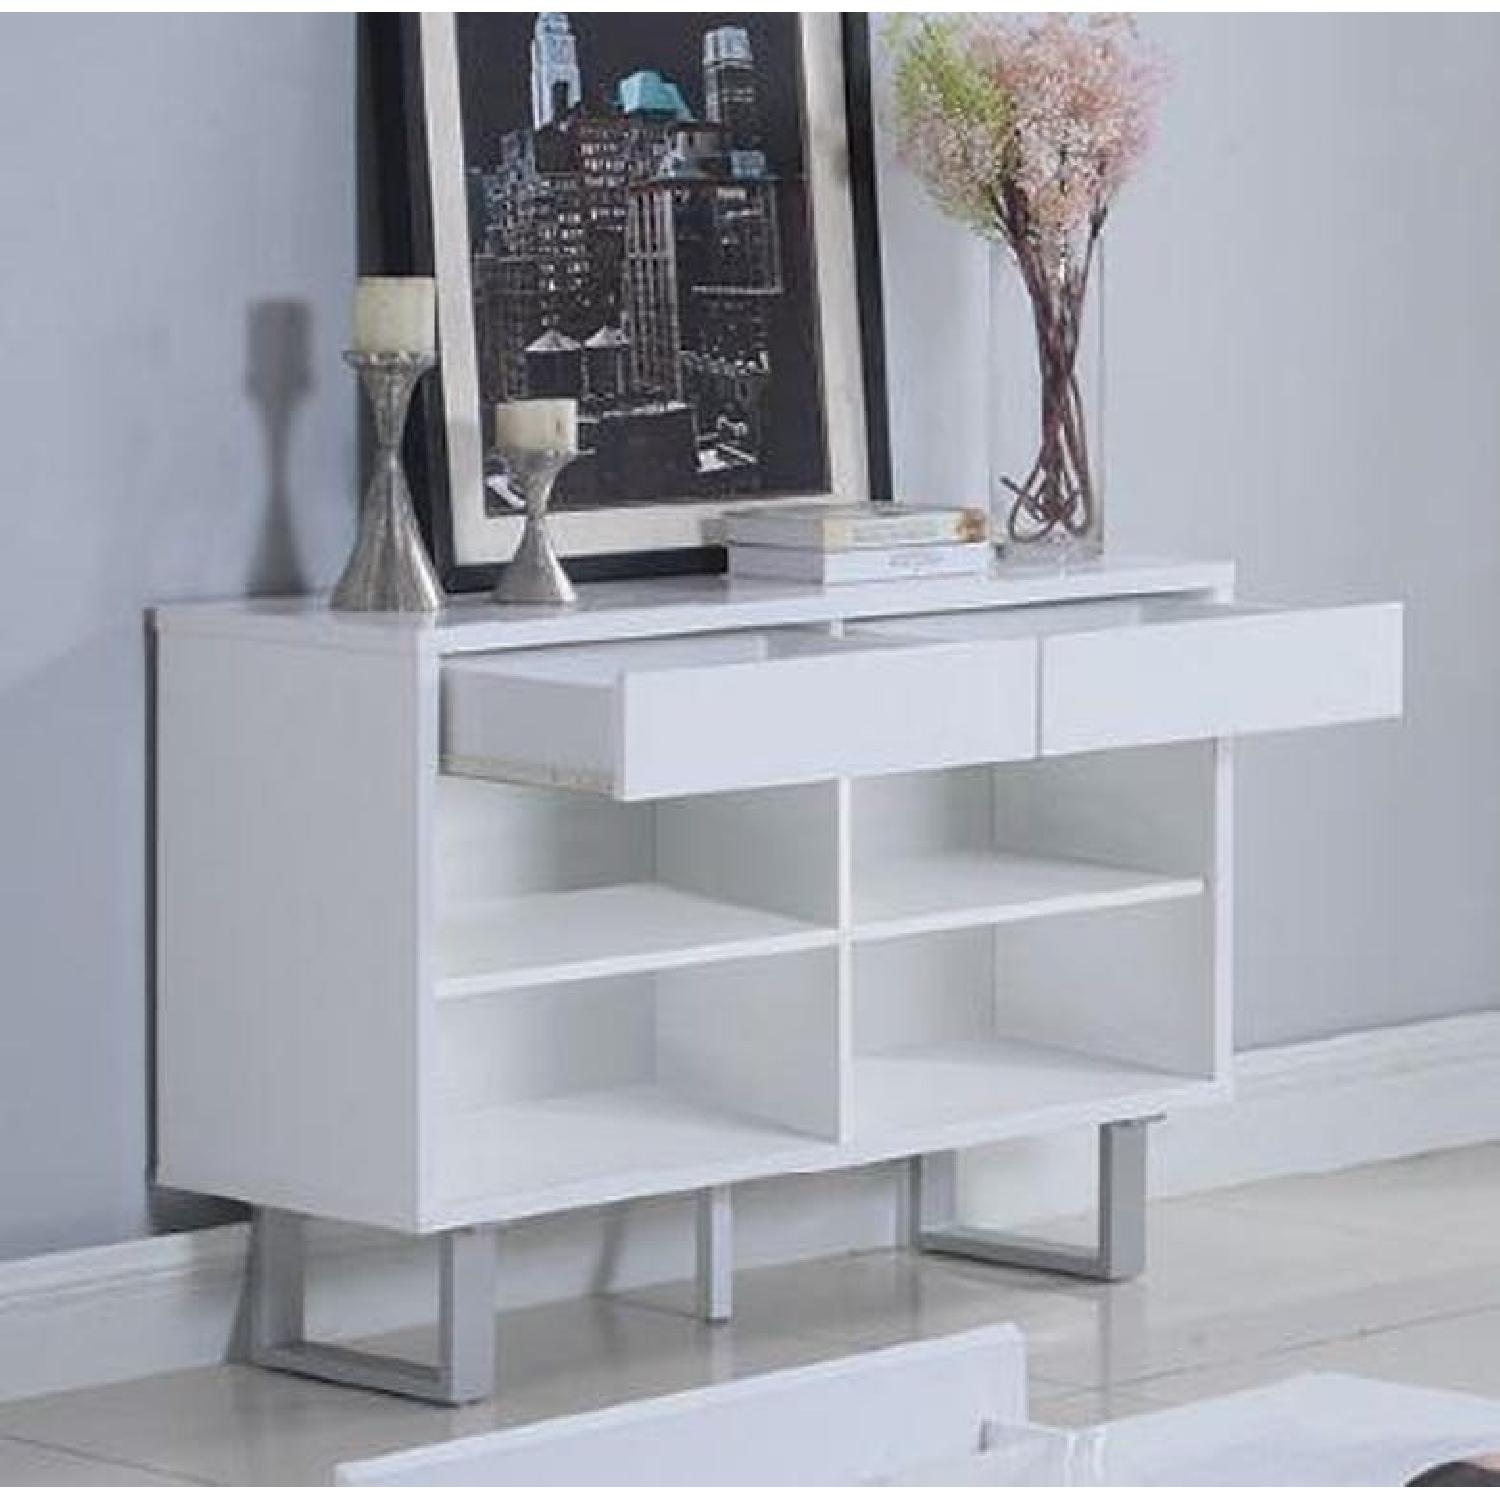 Glossy White Sofa Table w/ 2 Side Drawers - image-1